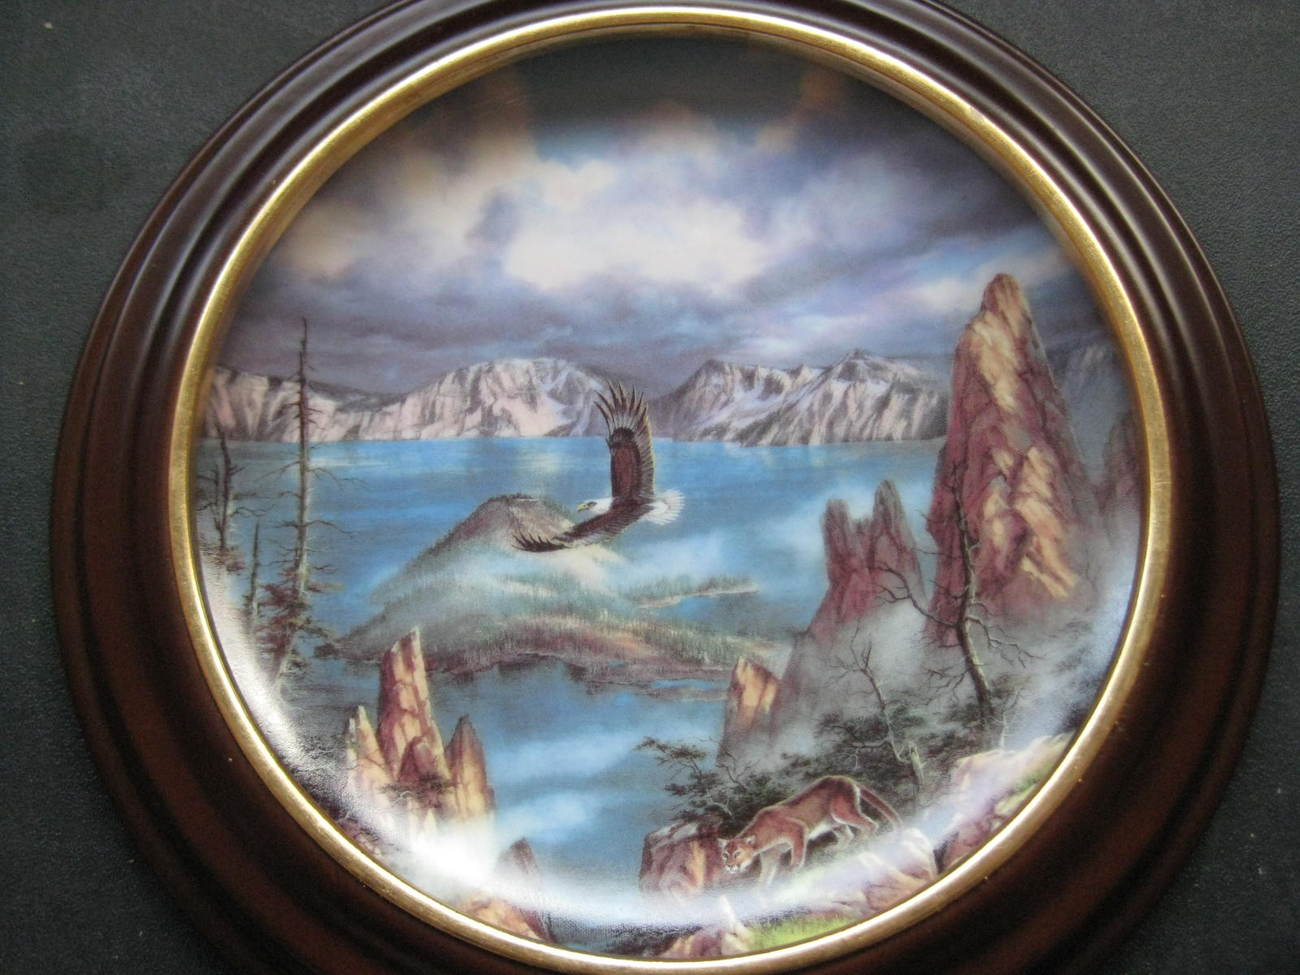 Framed Plate - FLYING FREE featuring CRATER LAKE NATIONAL PARK - Danbury Mint image 2